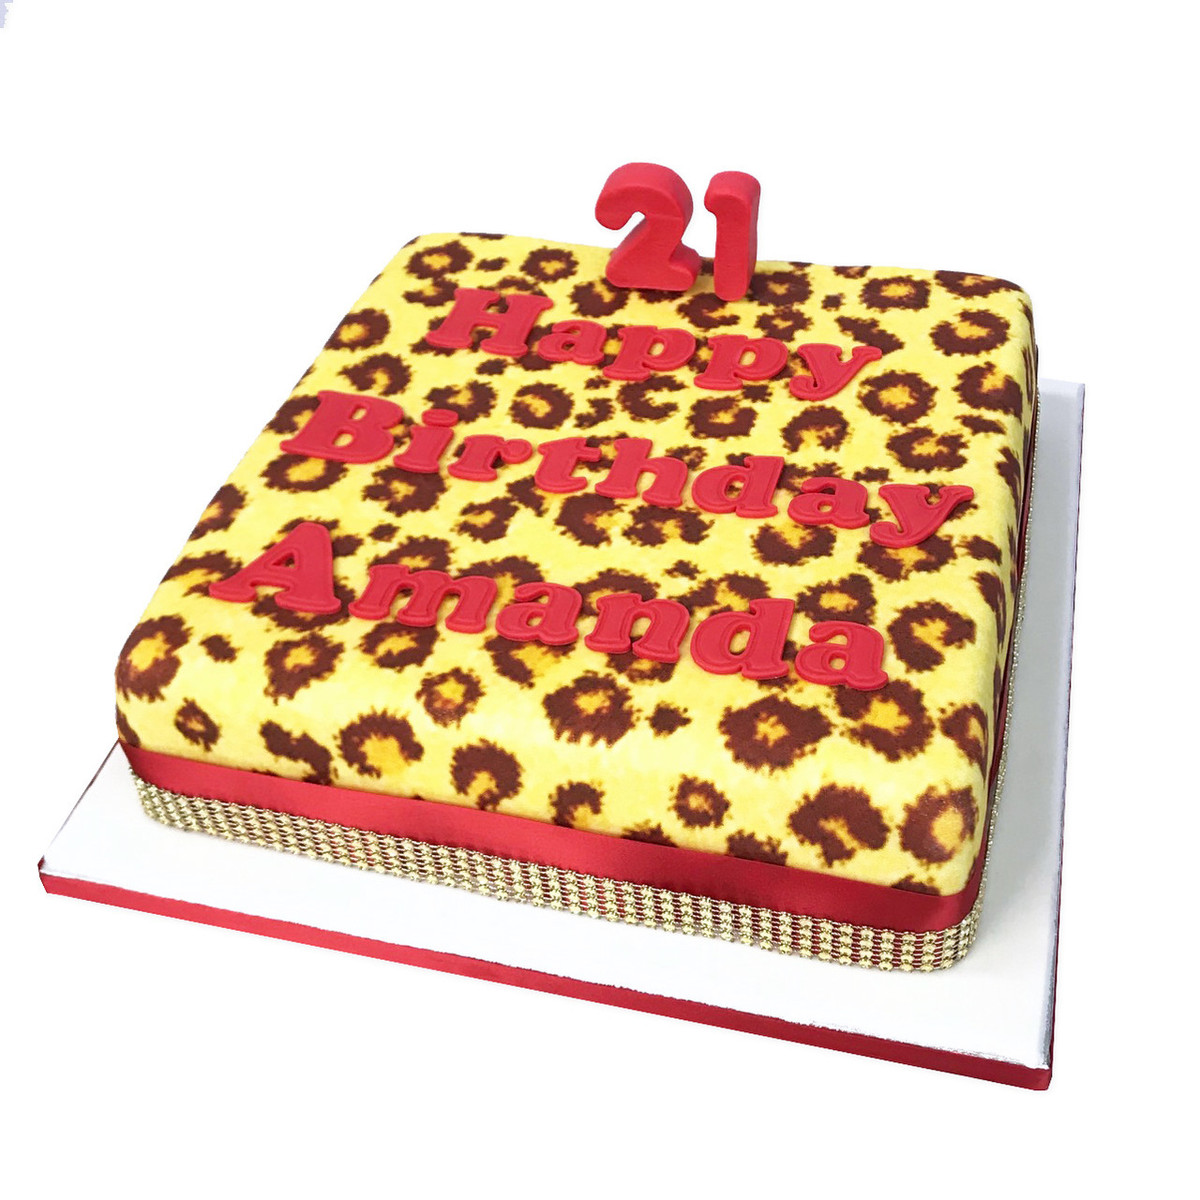 Excellent Leopard Print Birthday Cake Childrens Birthday Cakes The Funny Birthday Cards Online Aeocydamsfinfo